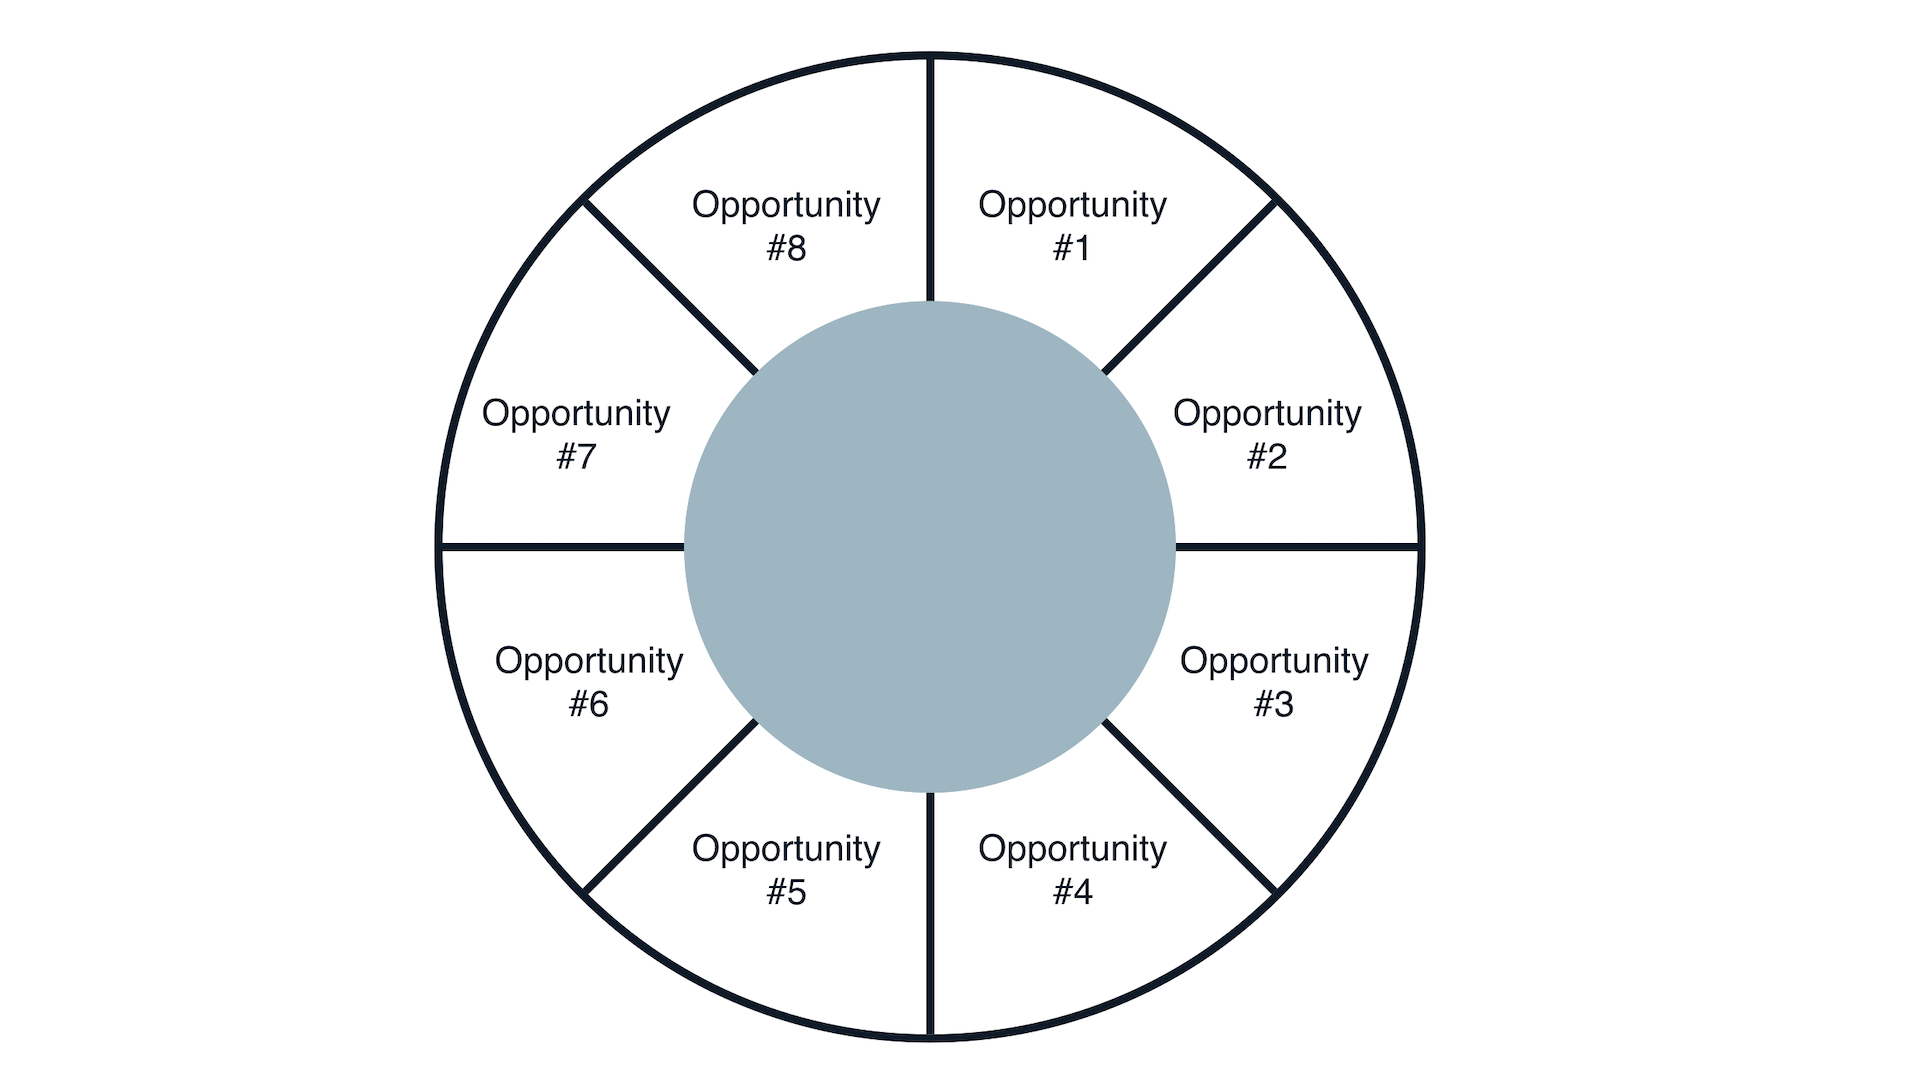 A circle divided into pie slices where each pie slice represents a business opportunity and is labelled one through nine.